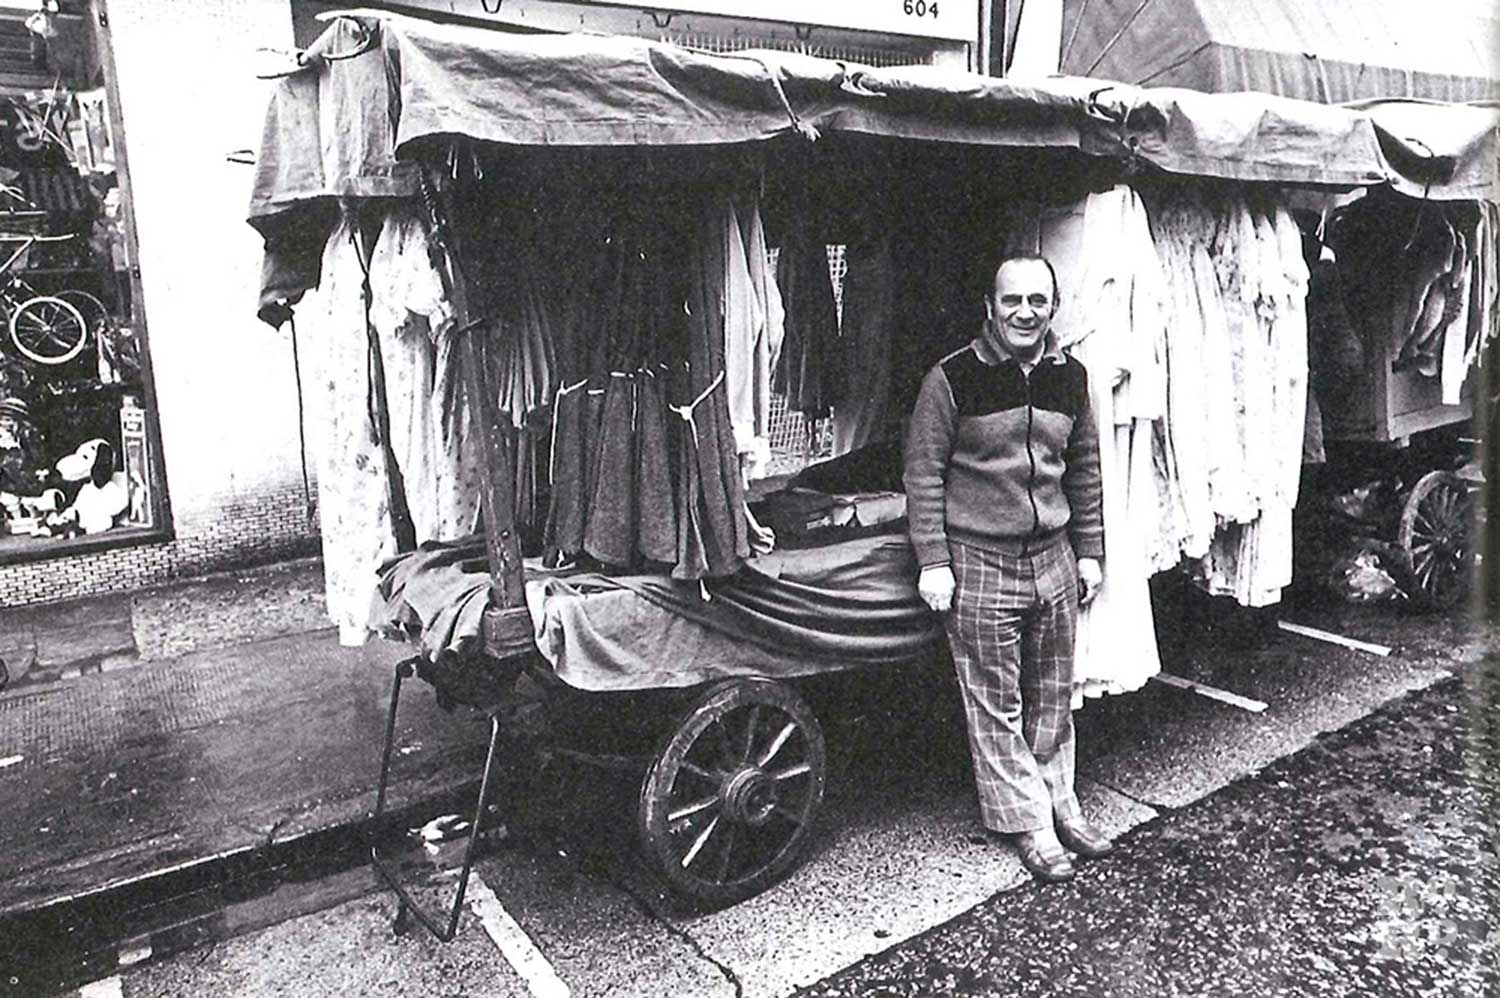 Harry da Costa on Roman Road market, 1970s or 80s.